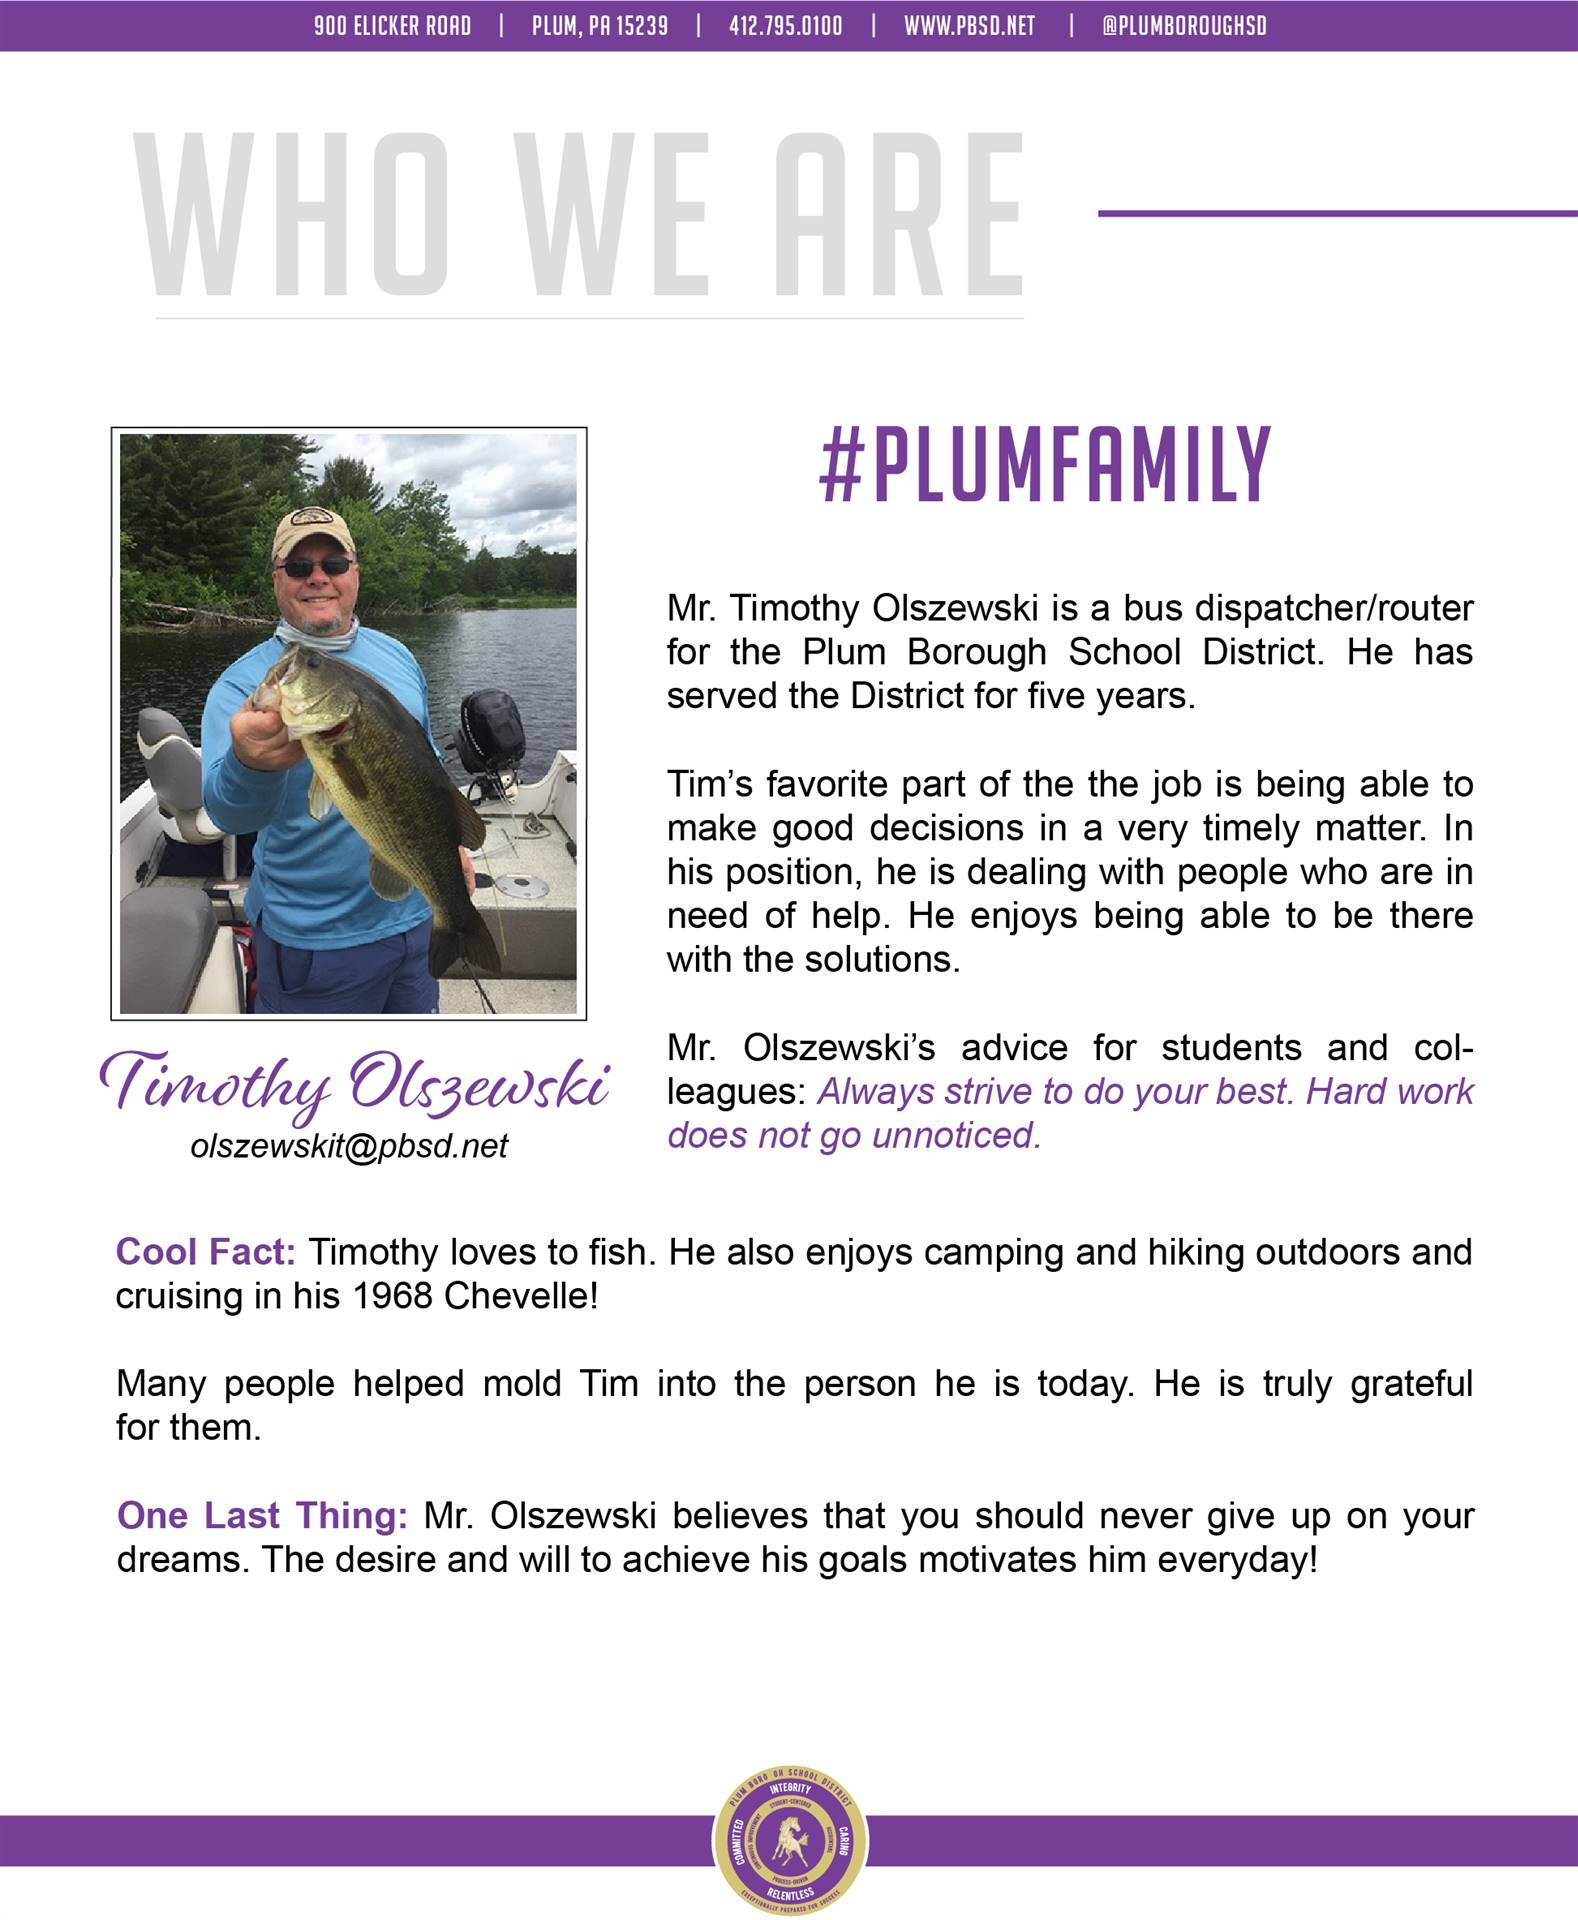 Who We Are Wednesday features Timothy Olszewski.